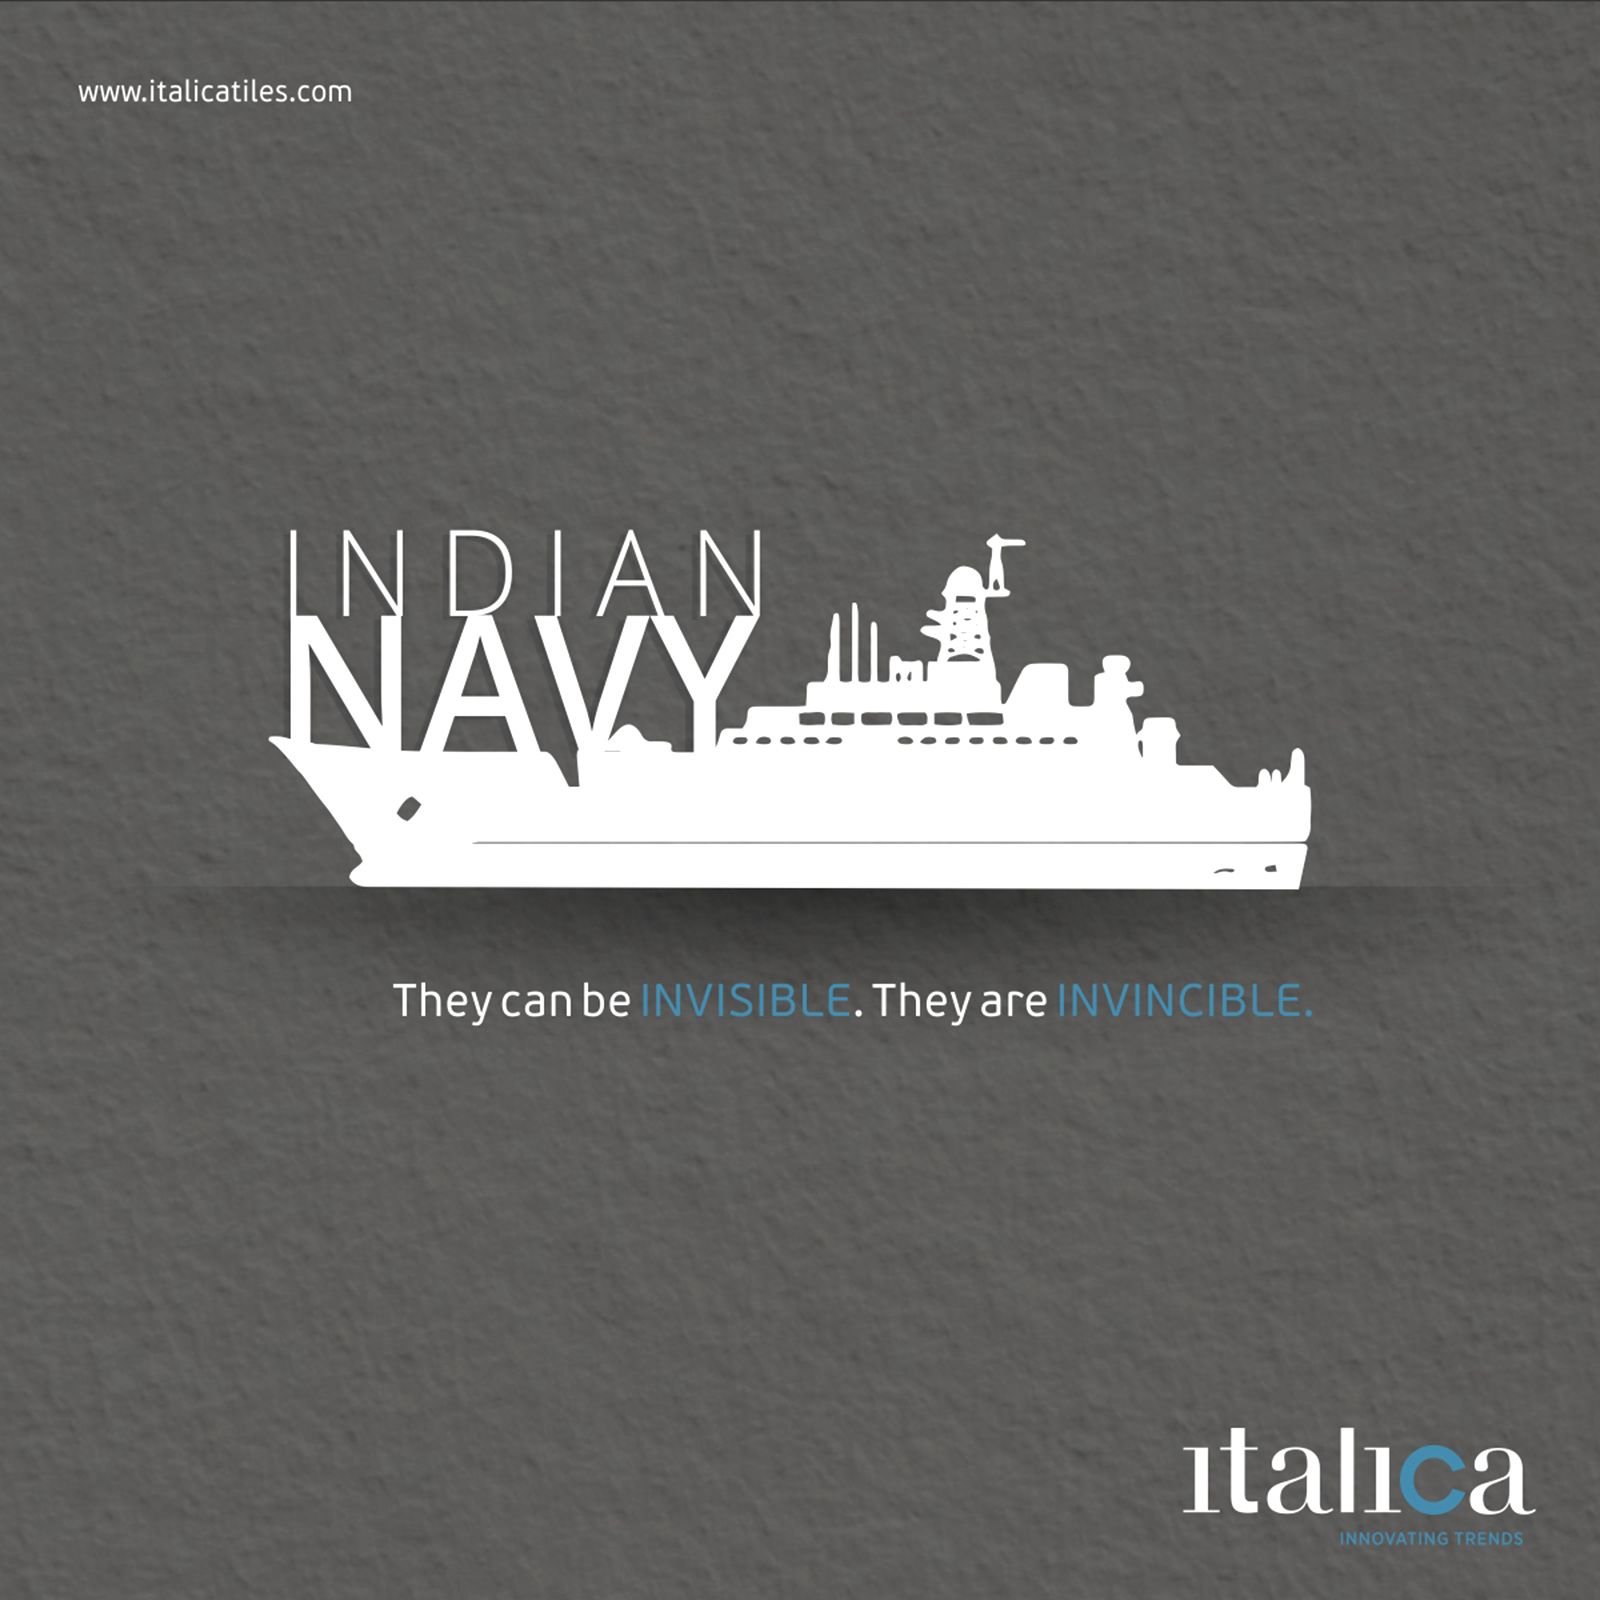 They Can Be Invisible They Are Invincible Indian Navy Day Italica Tiles Italicatiles Floortiles Indian Navy Day Indian Navy Navy Day Indian Navy Day